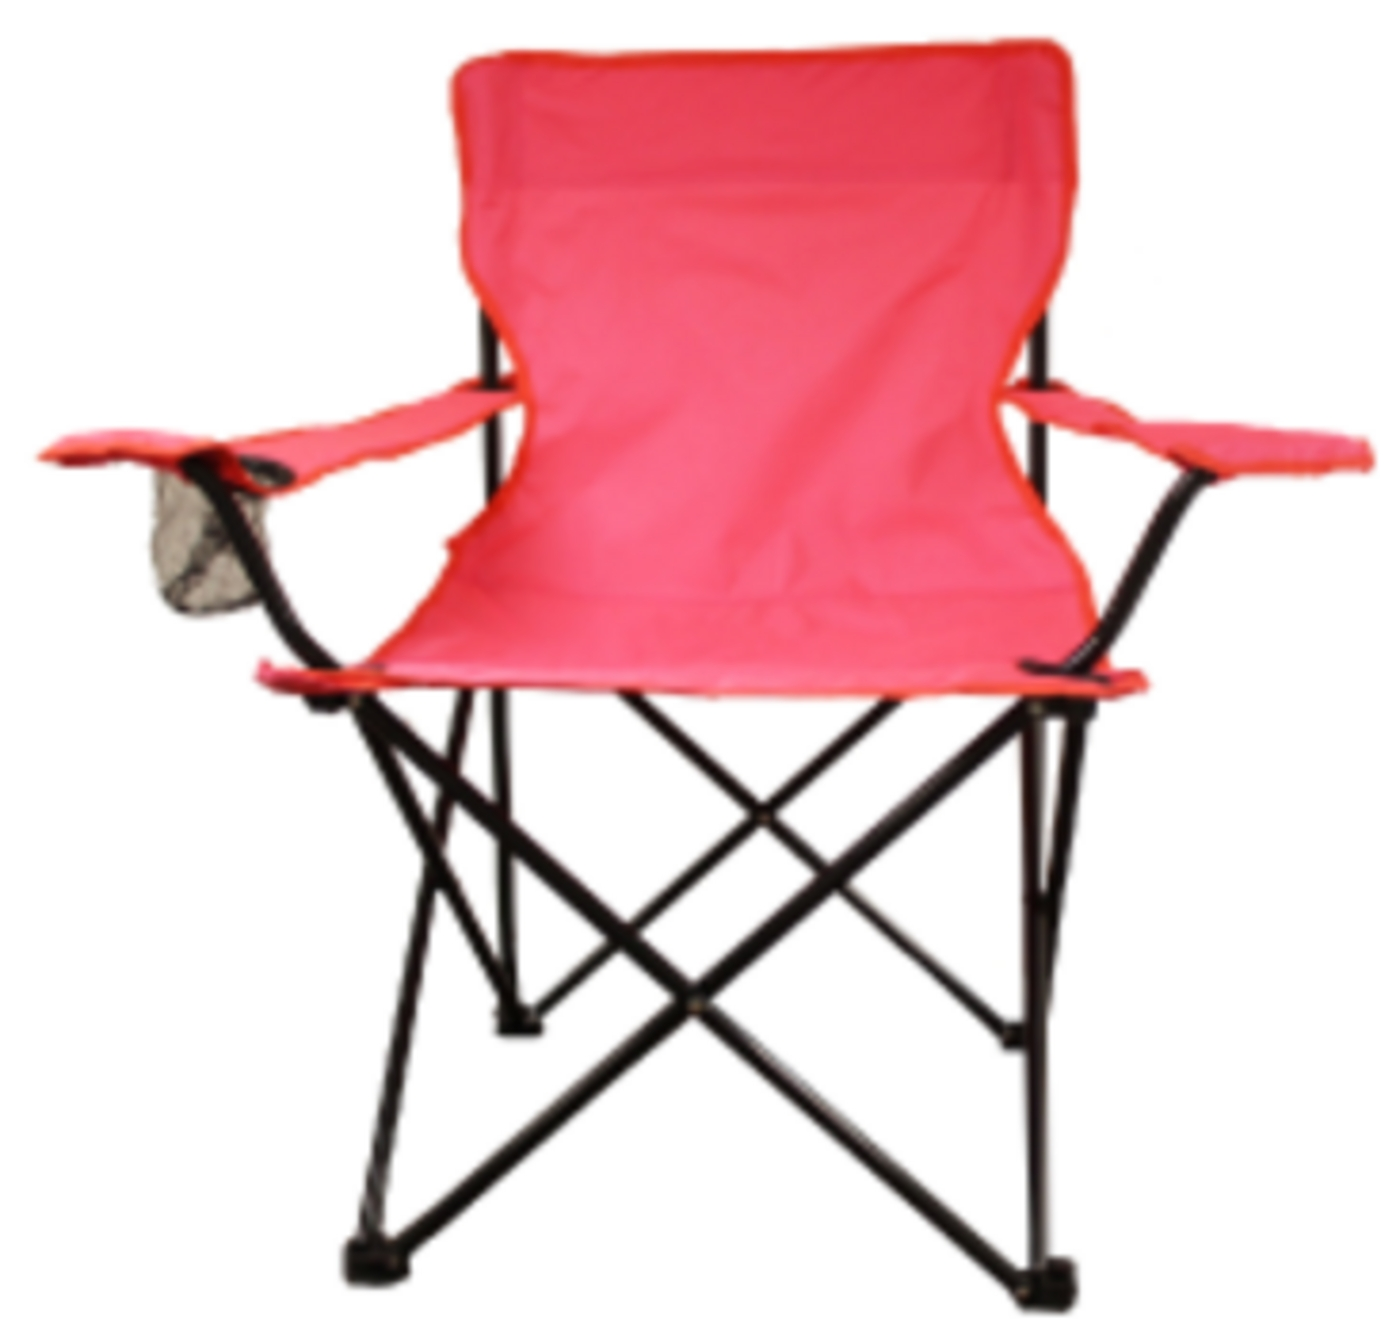 Wfs Folding Chair with Armrest